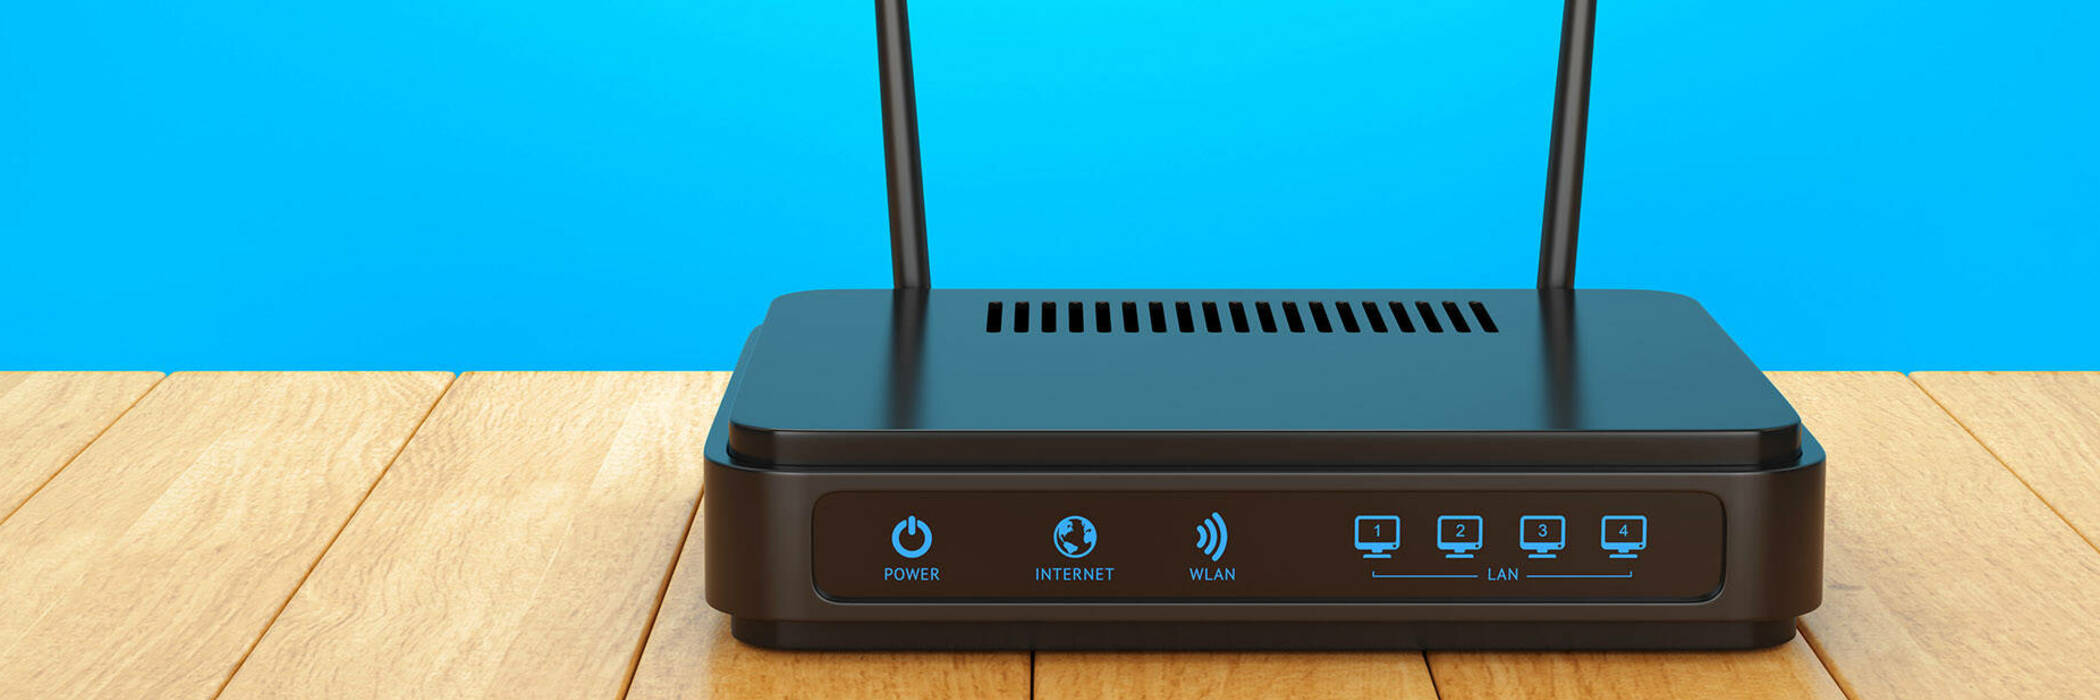 Wireless router photograph.